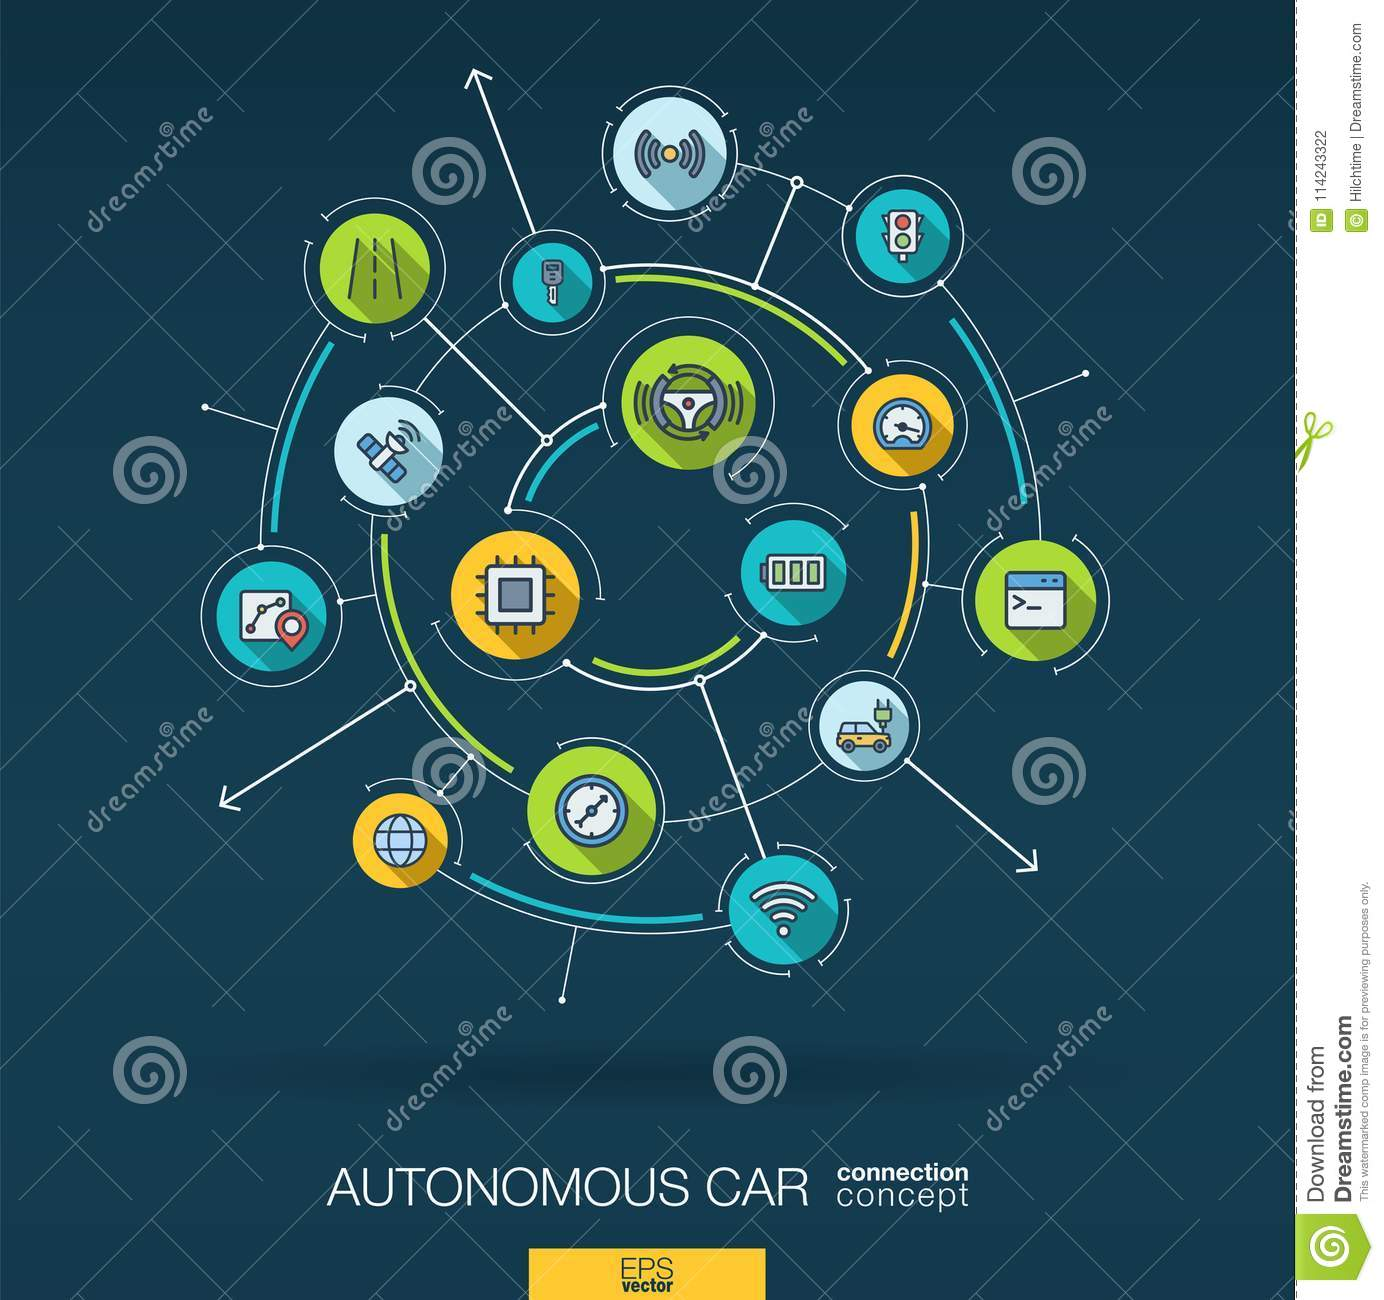 Abstract autonomous electric car, self-driving, autopilot background. Digital connect system with integrated circles